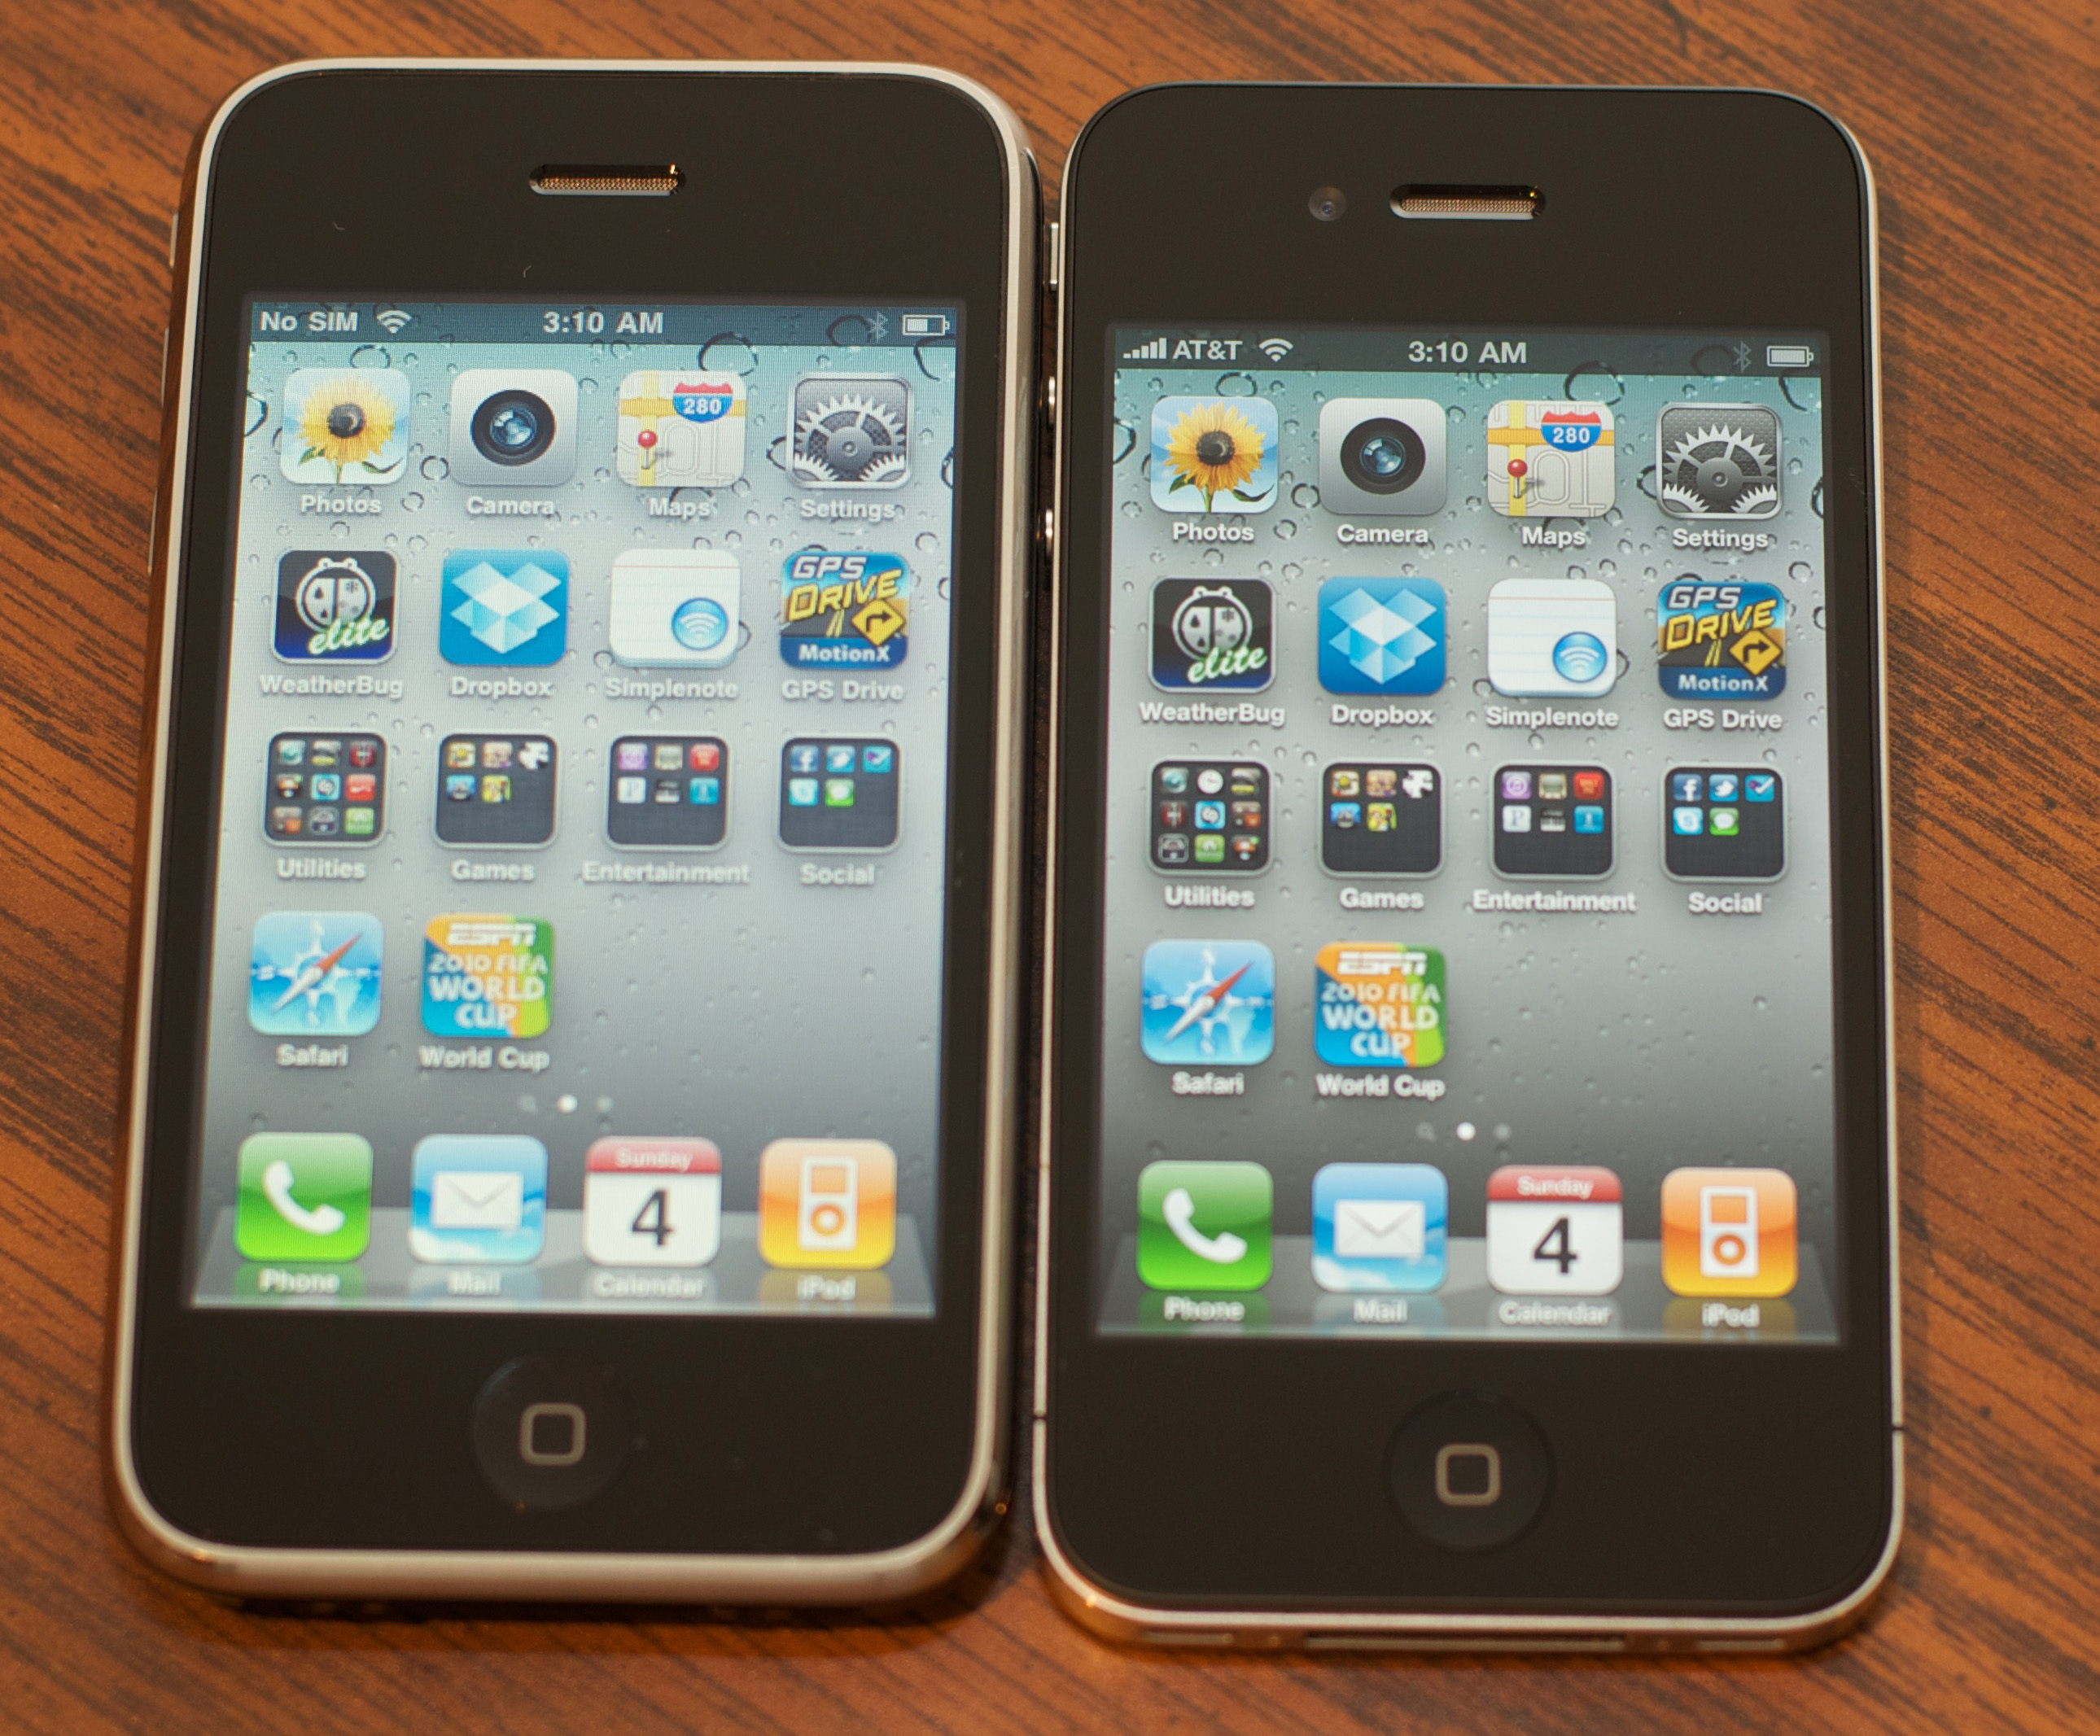 iPhone 4 to iPhone 3Gs screen pixel comparison - Retina display